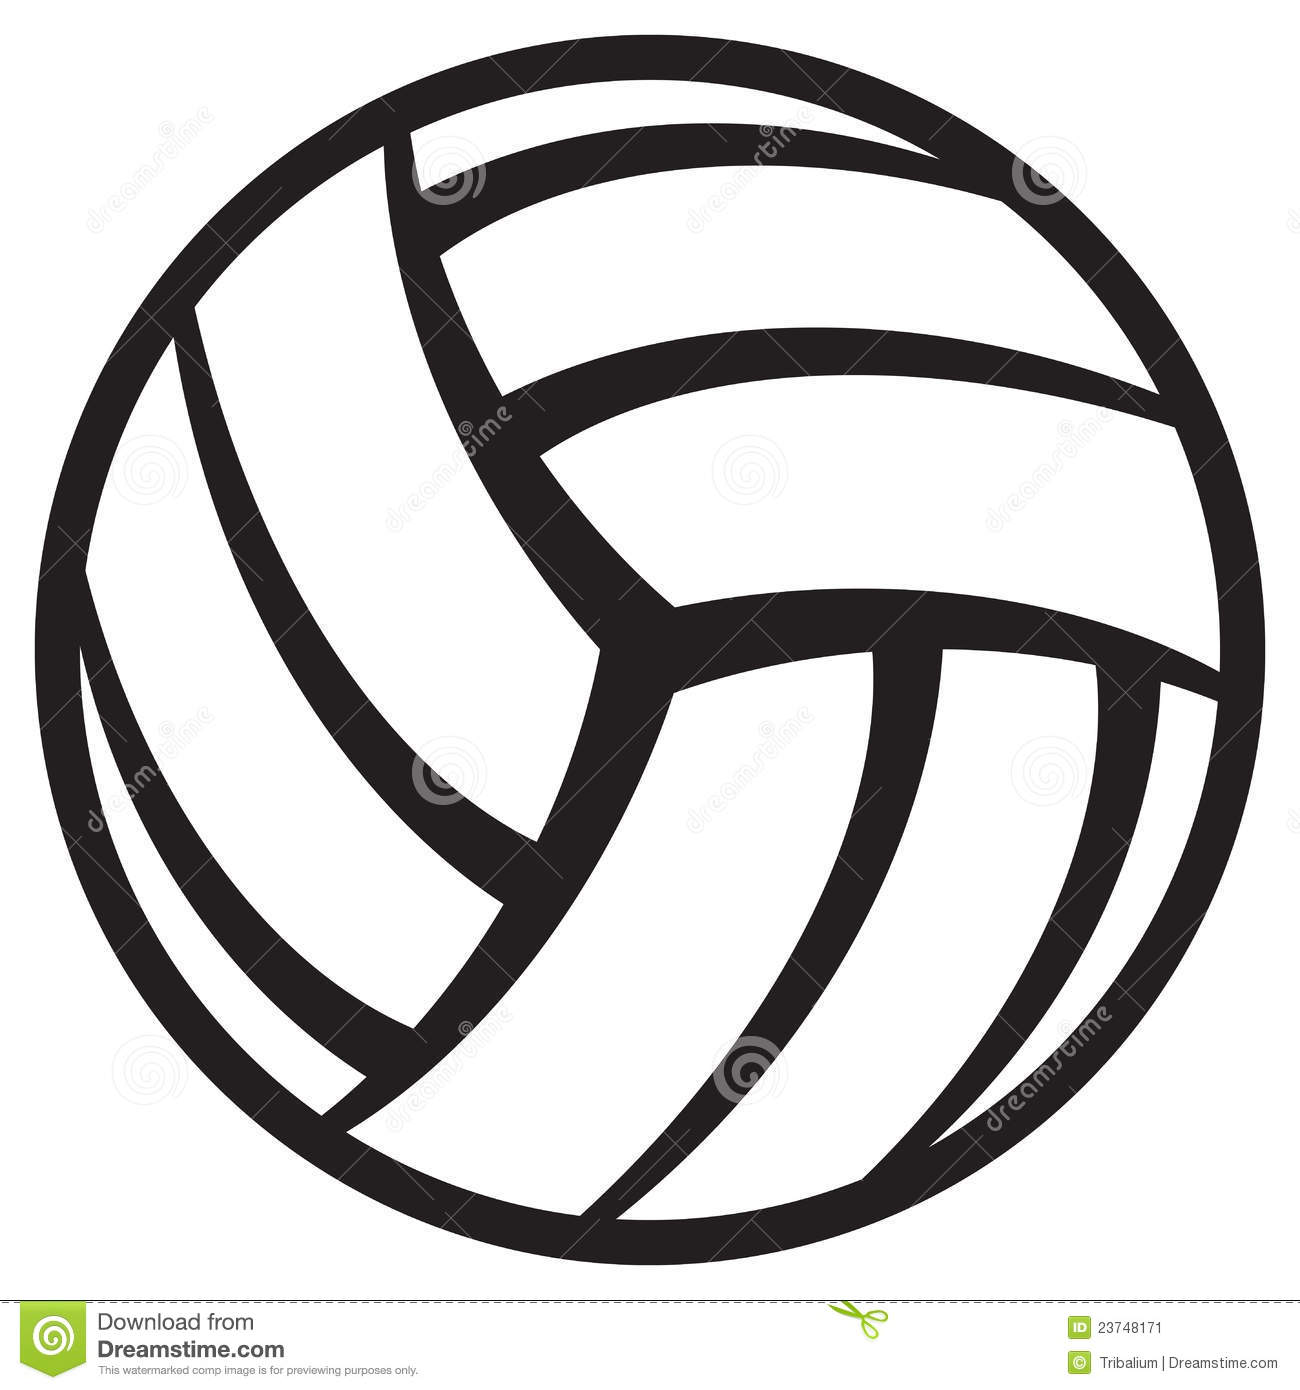 Volleyball clipart clipart cliparts for you